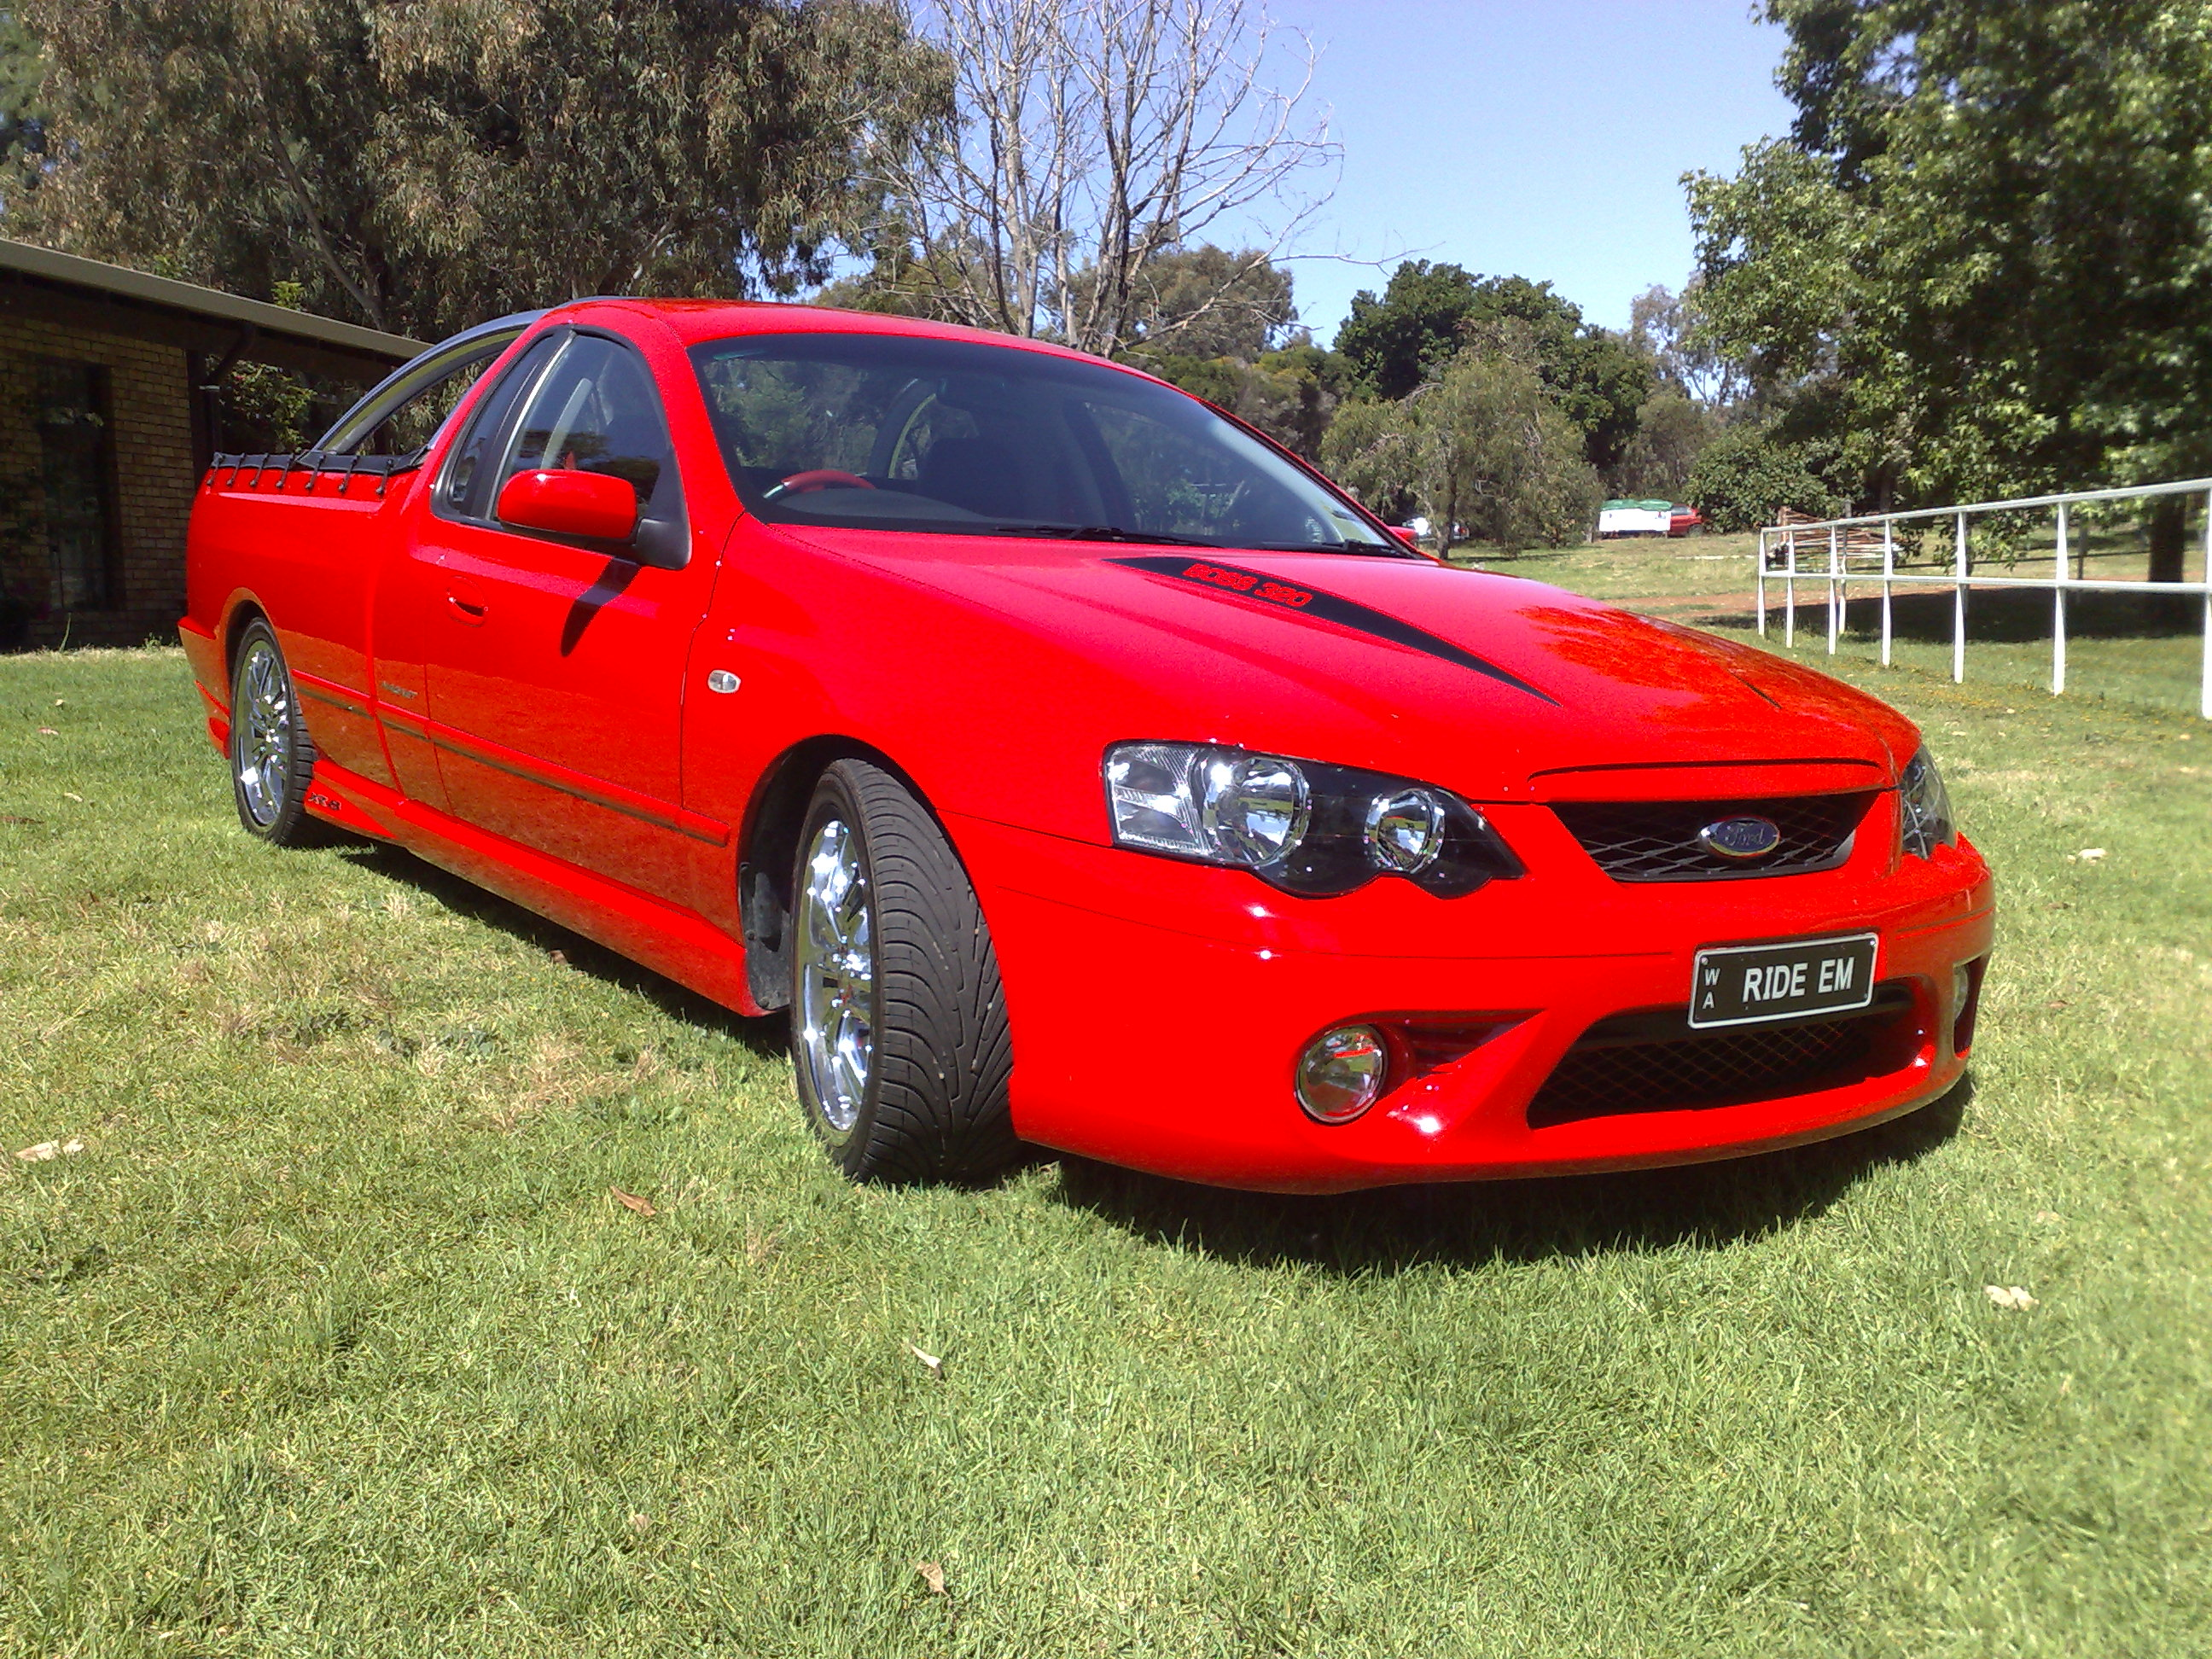 2006 Ford Falcon Xr8 Ute 1 4 Mile Drag Racing Timeslip Specs 0 60